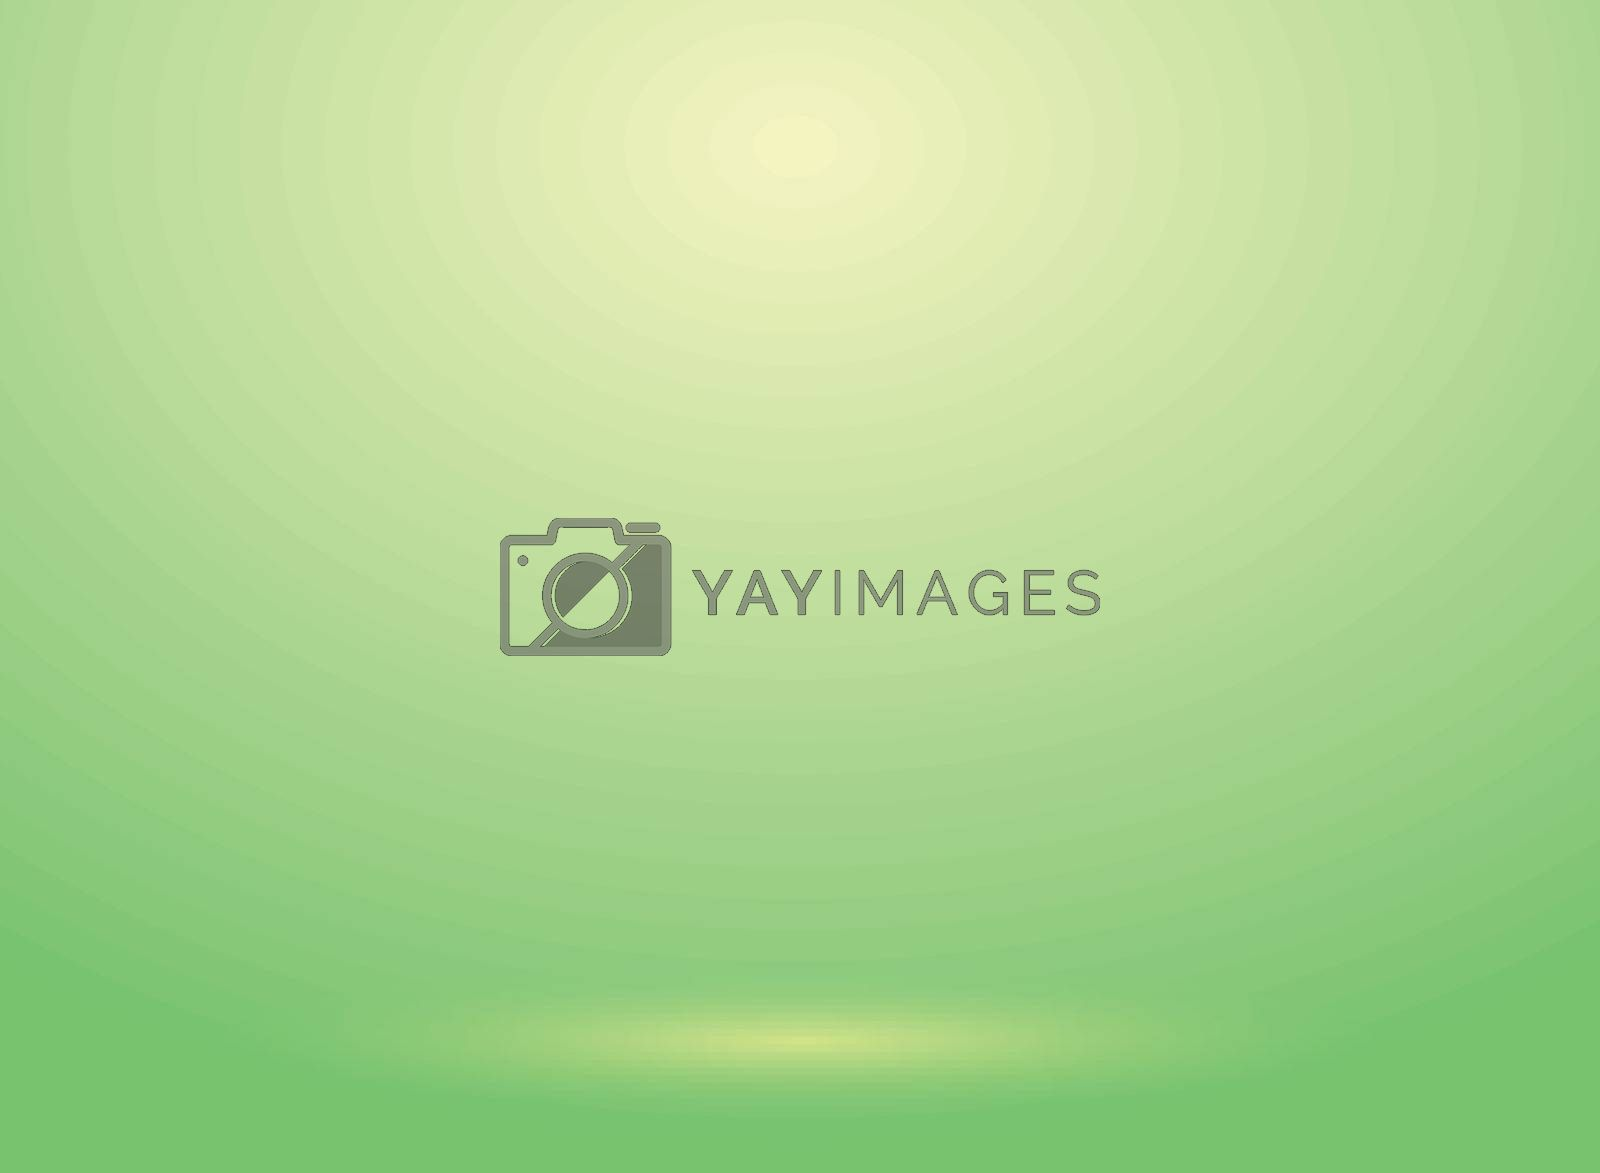 Studio room green lihjt background with lighting well use as Business backdrop, Template mock up for display of product, Vector illustration